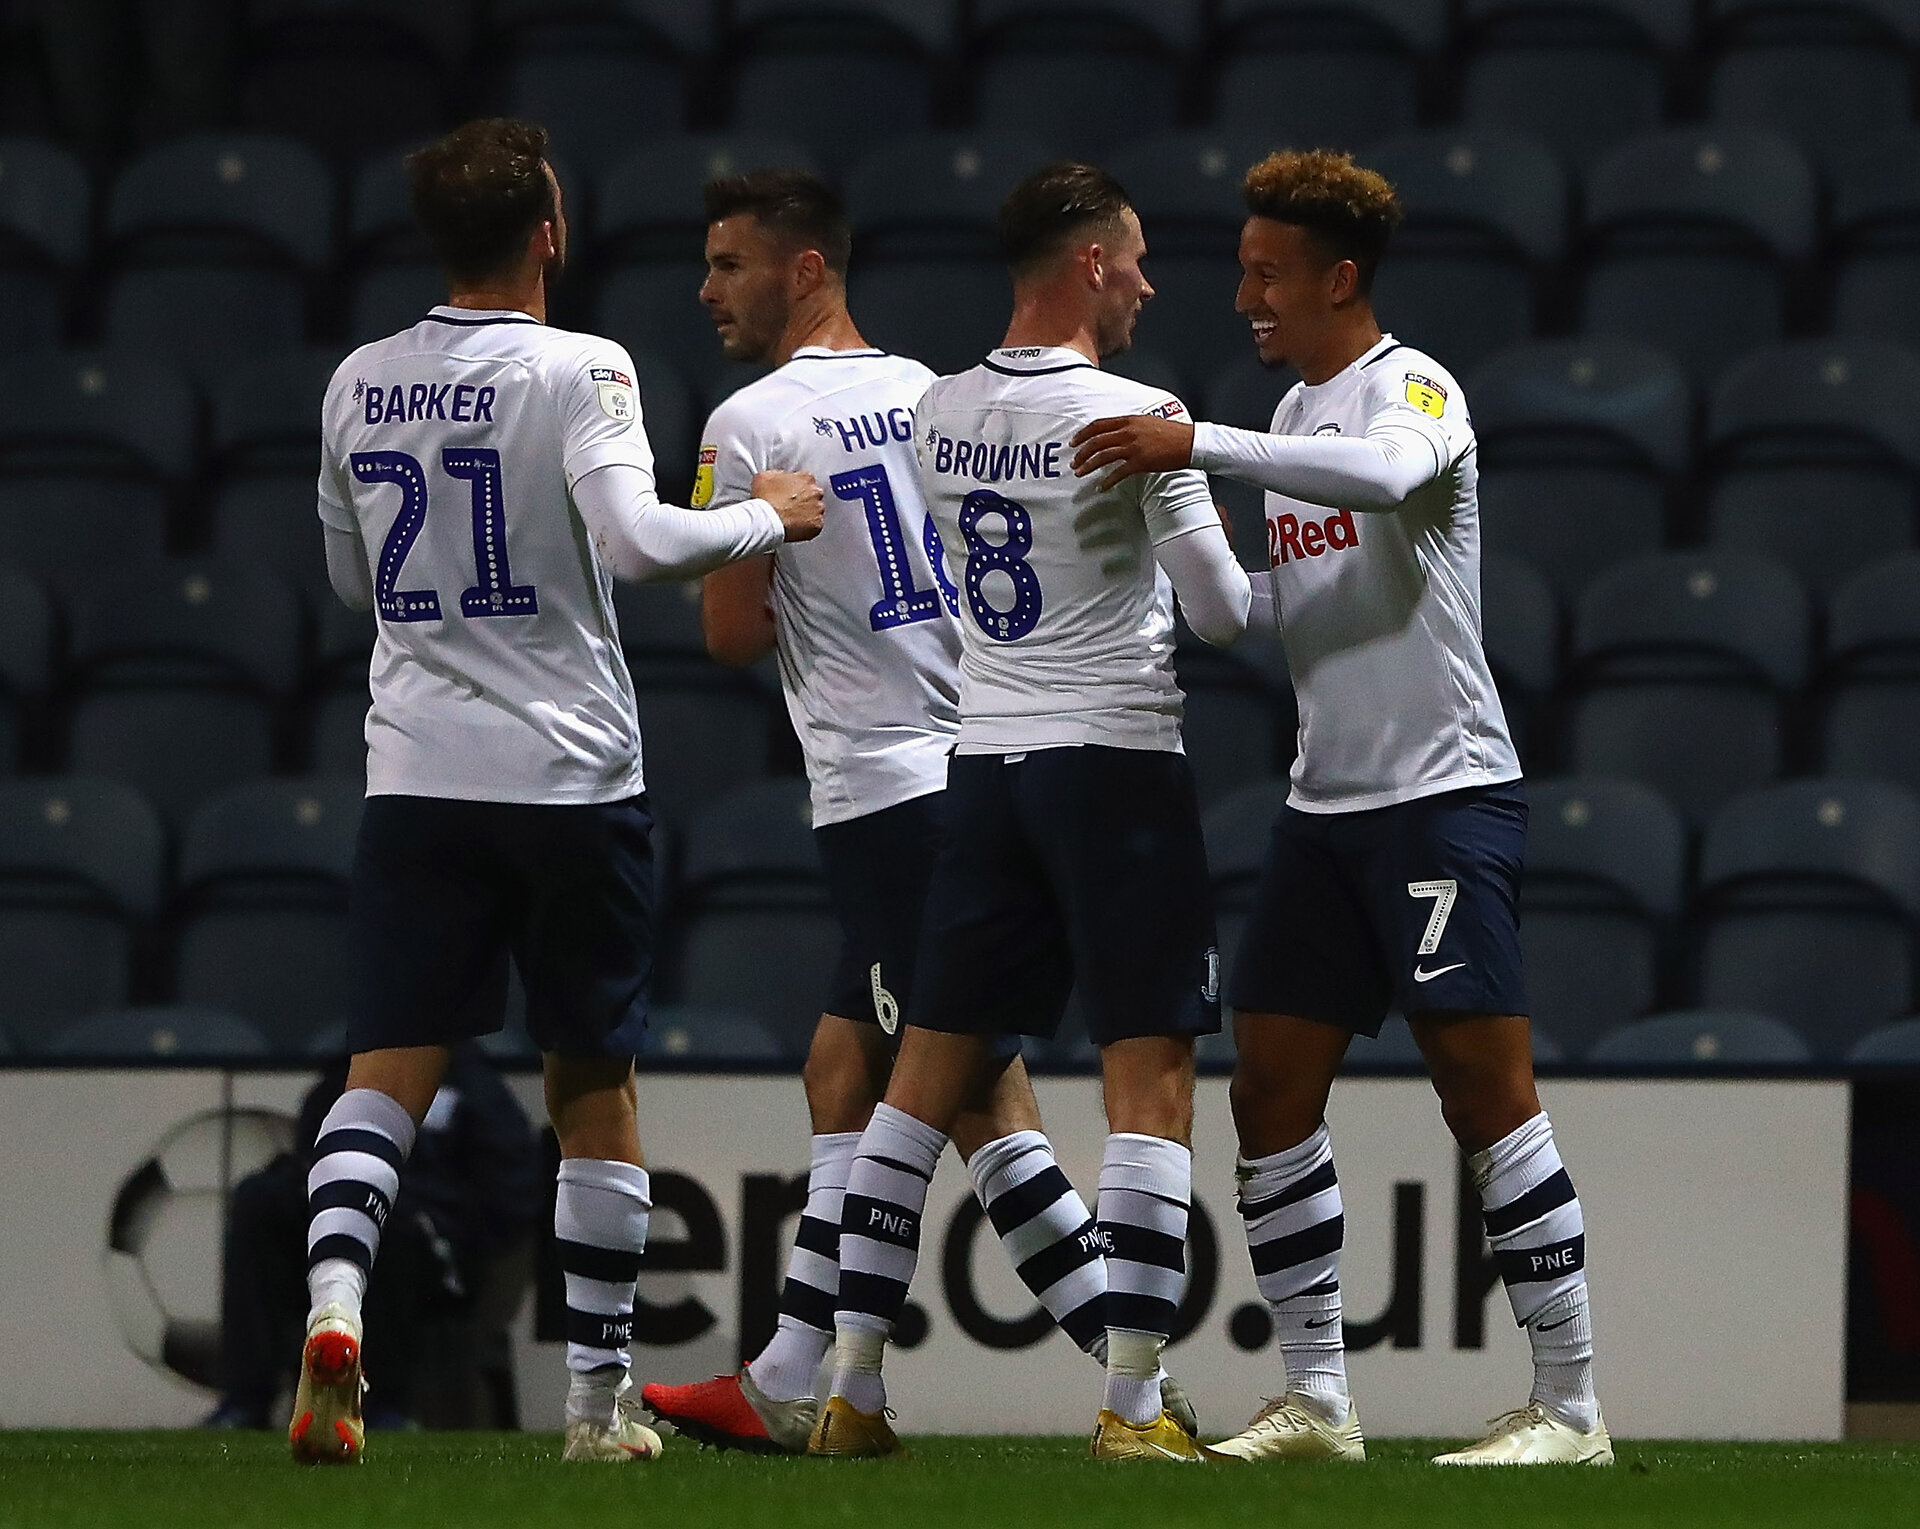 PRESTON, ENGLAND - SEPTEMBER 25:  Callum Robinson of Preston North End is congratulated on his goal during the Carabao Cup Third Round match between Preston North End and Middlesbrough at Deepdale on September 25, 2018 in Preston, England.  (Photo by Matthew Lewis/Getty Images)